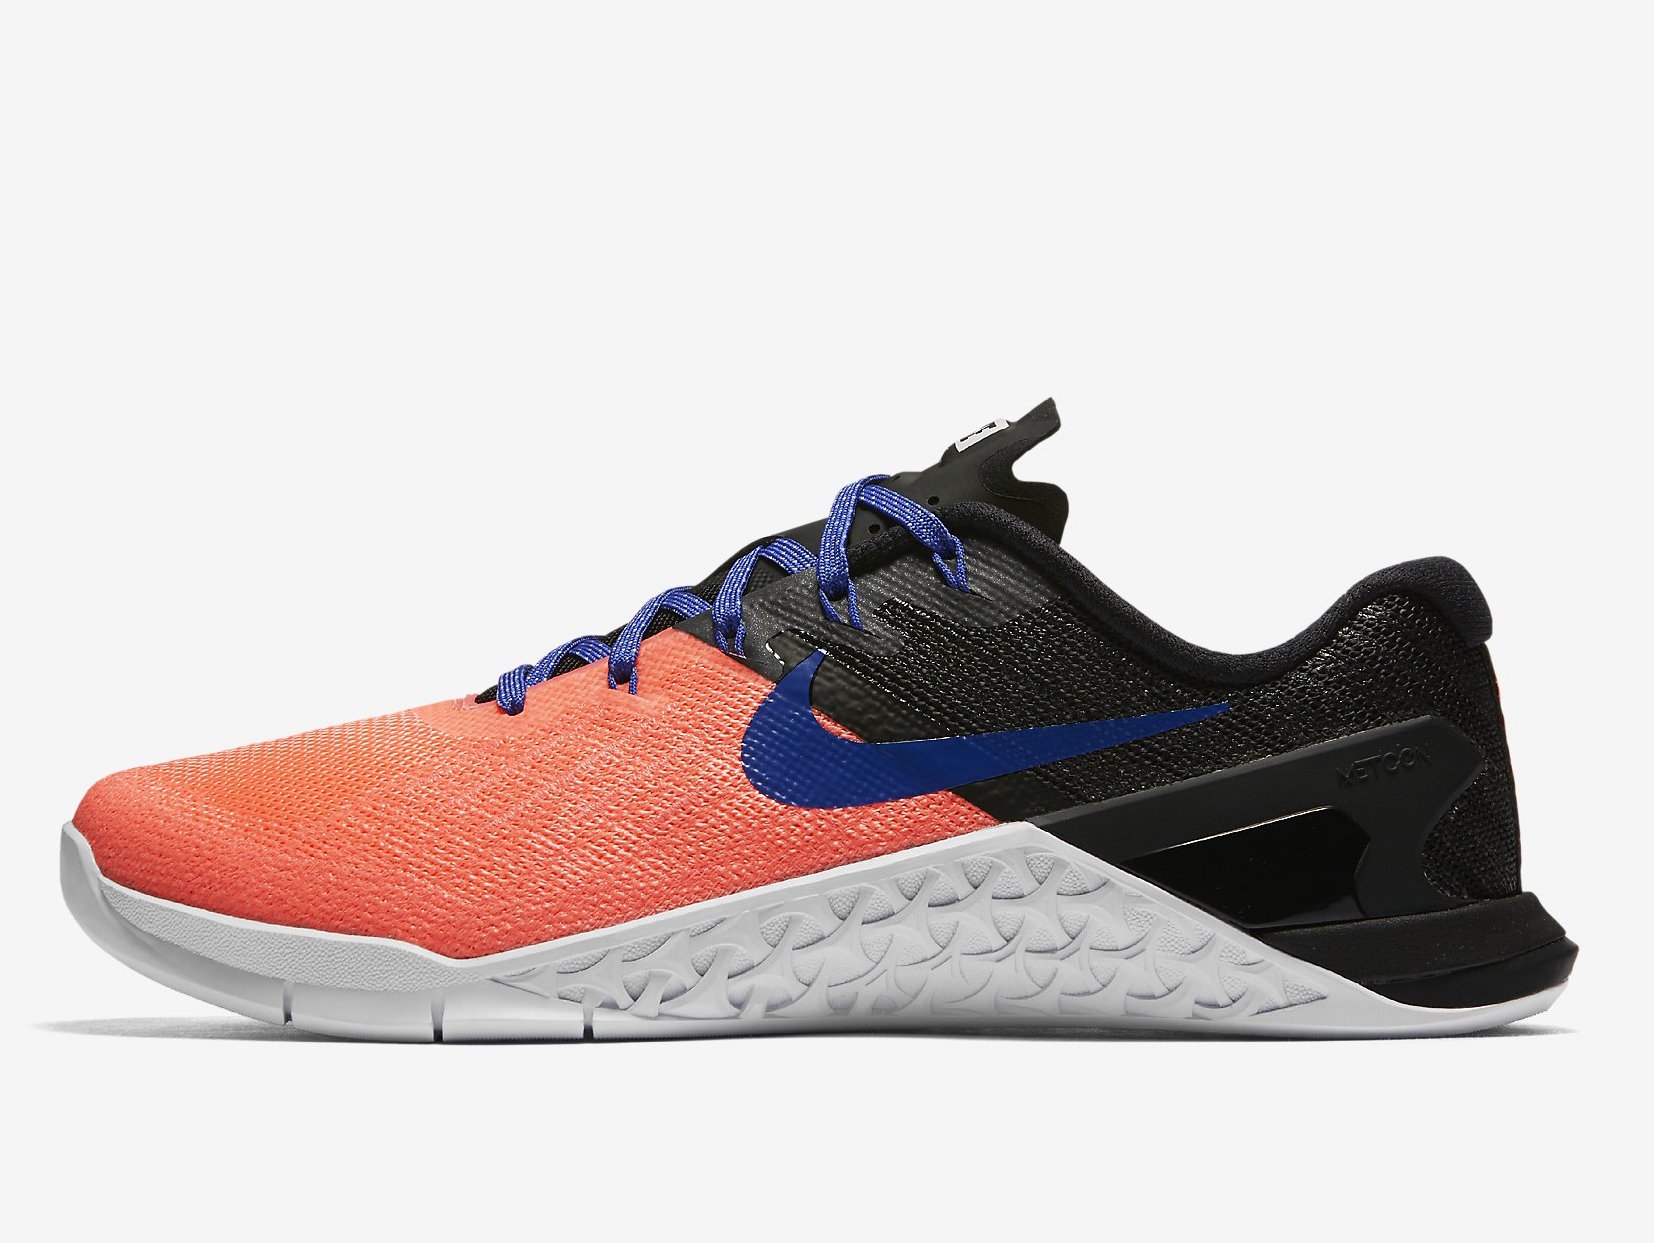 If You Only Buy One Pair of Gym Sneakers, Make It These